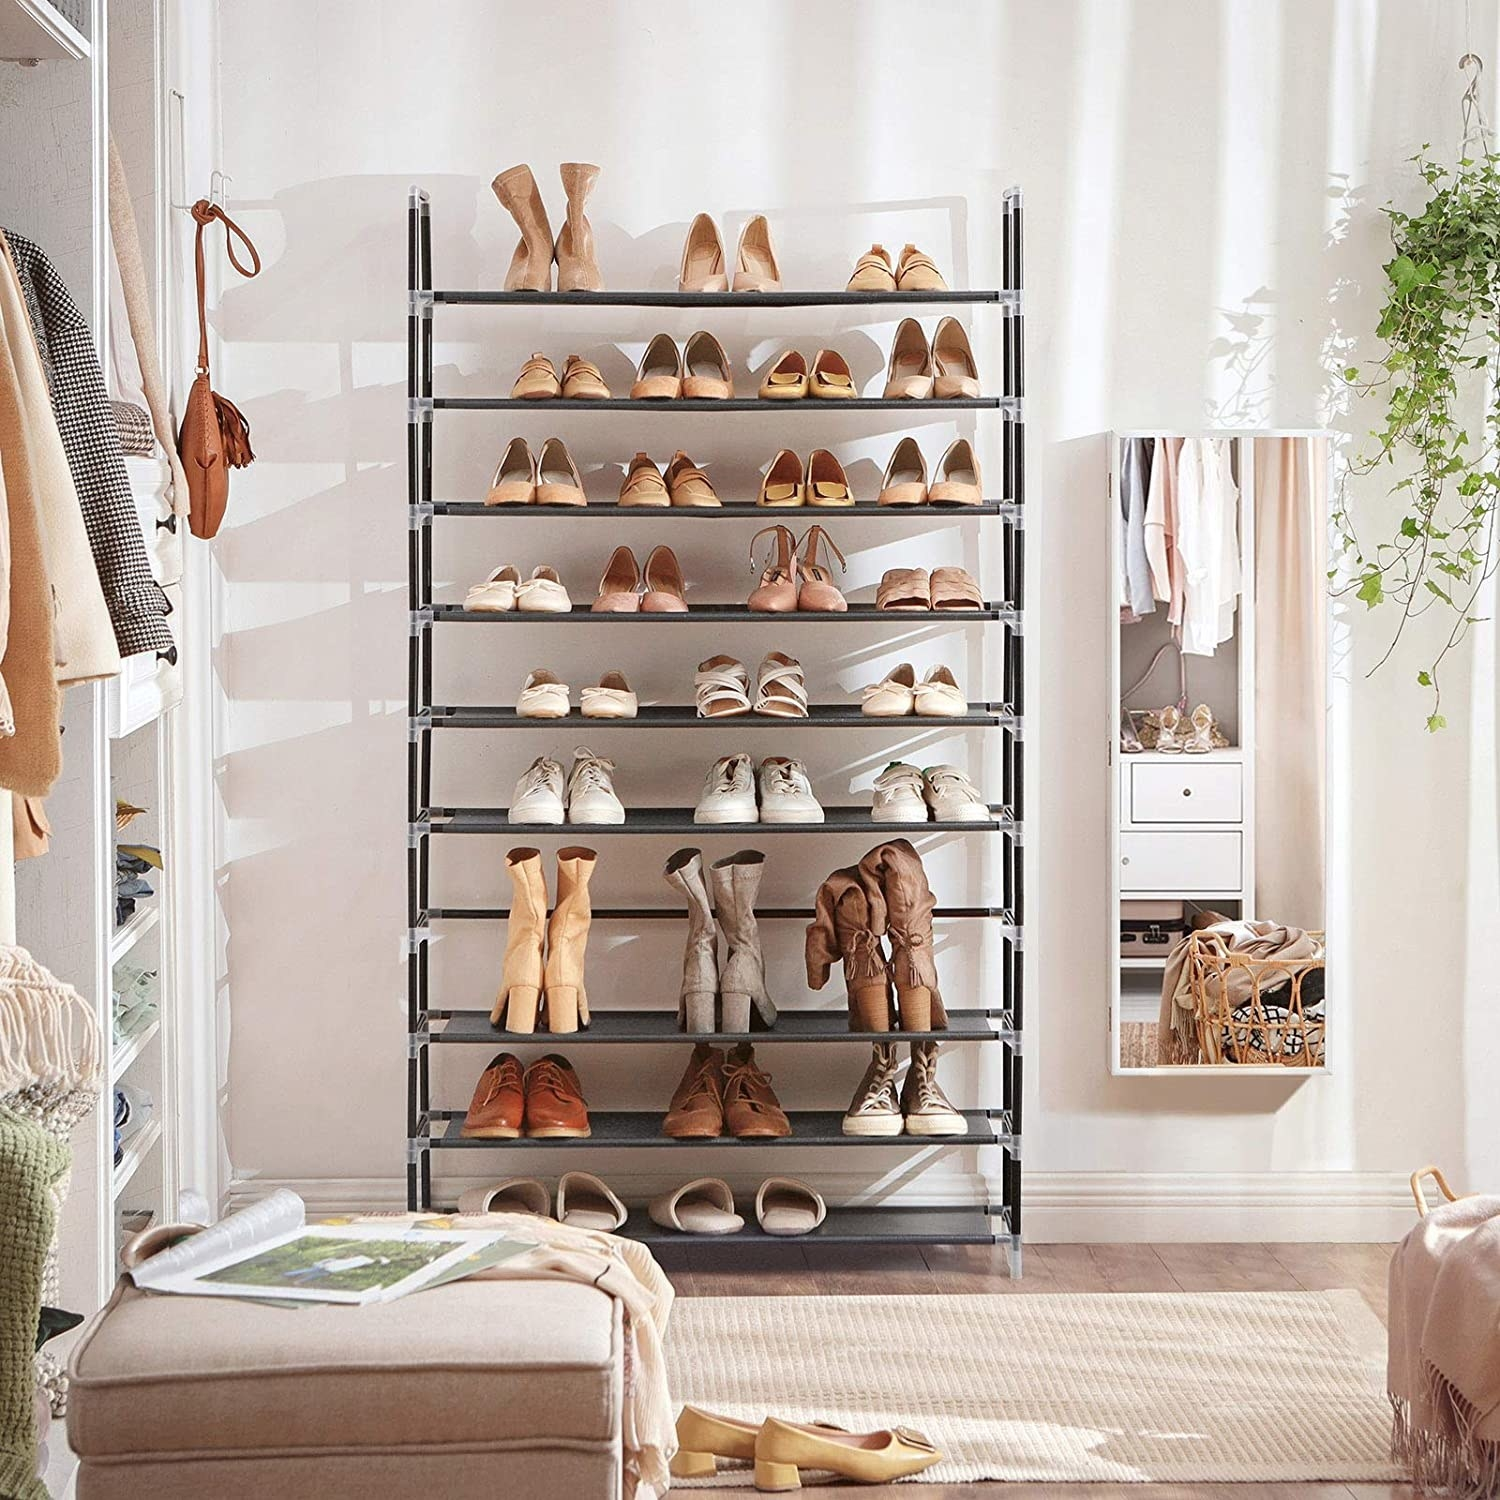 A large shoe rack against a wall with three pairs of shoes on each shelf